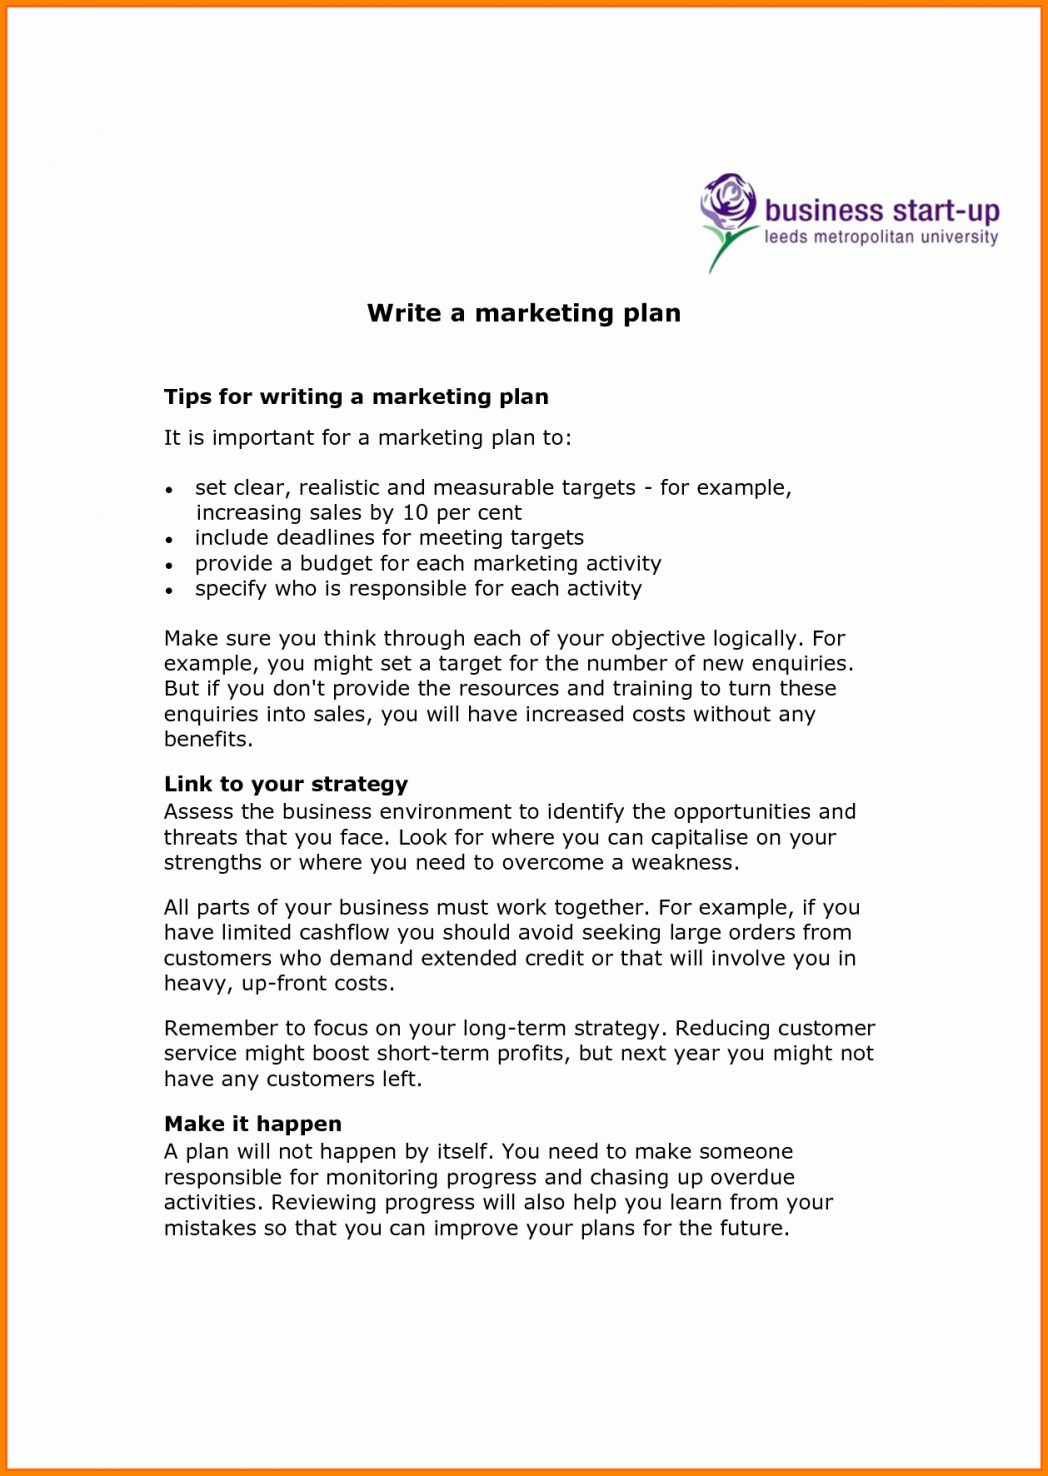 022 Research Paper Parts Of And Its Definition Pdf Marketing Plan Example Business Genxeg Quizlet Sample Proposal Bestf Real Estate Bussines Small Company Sba Executive Staggering A Full